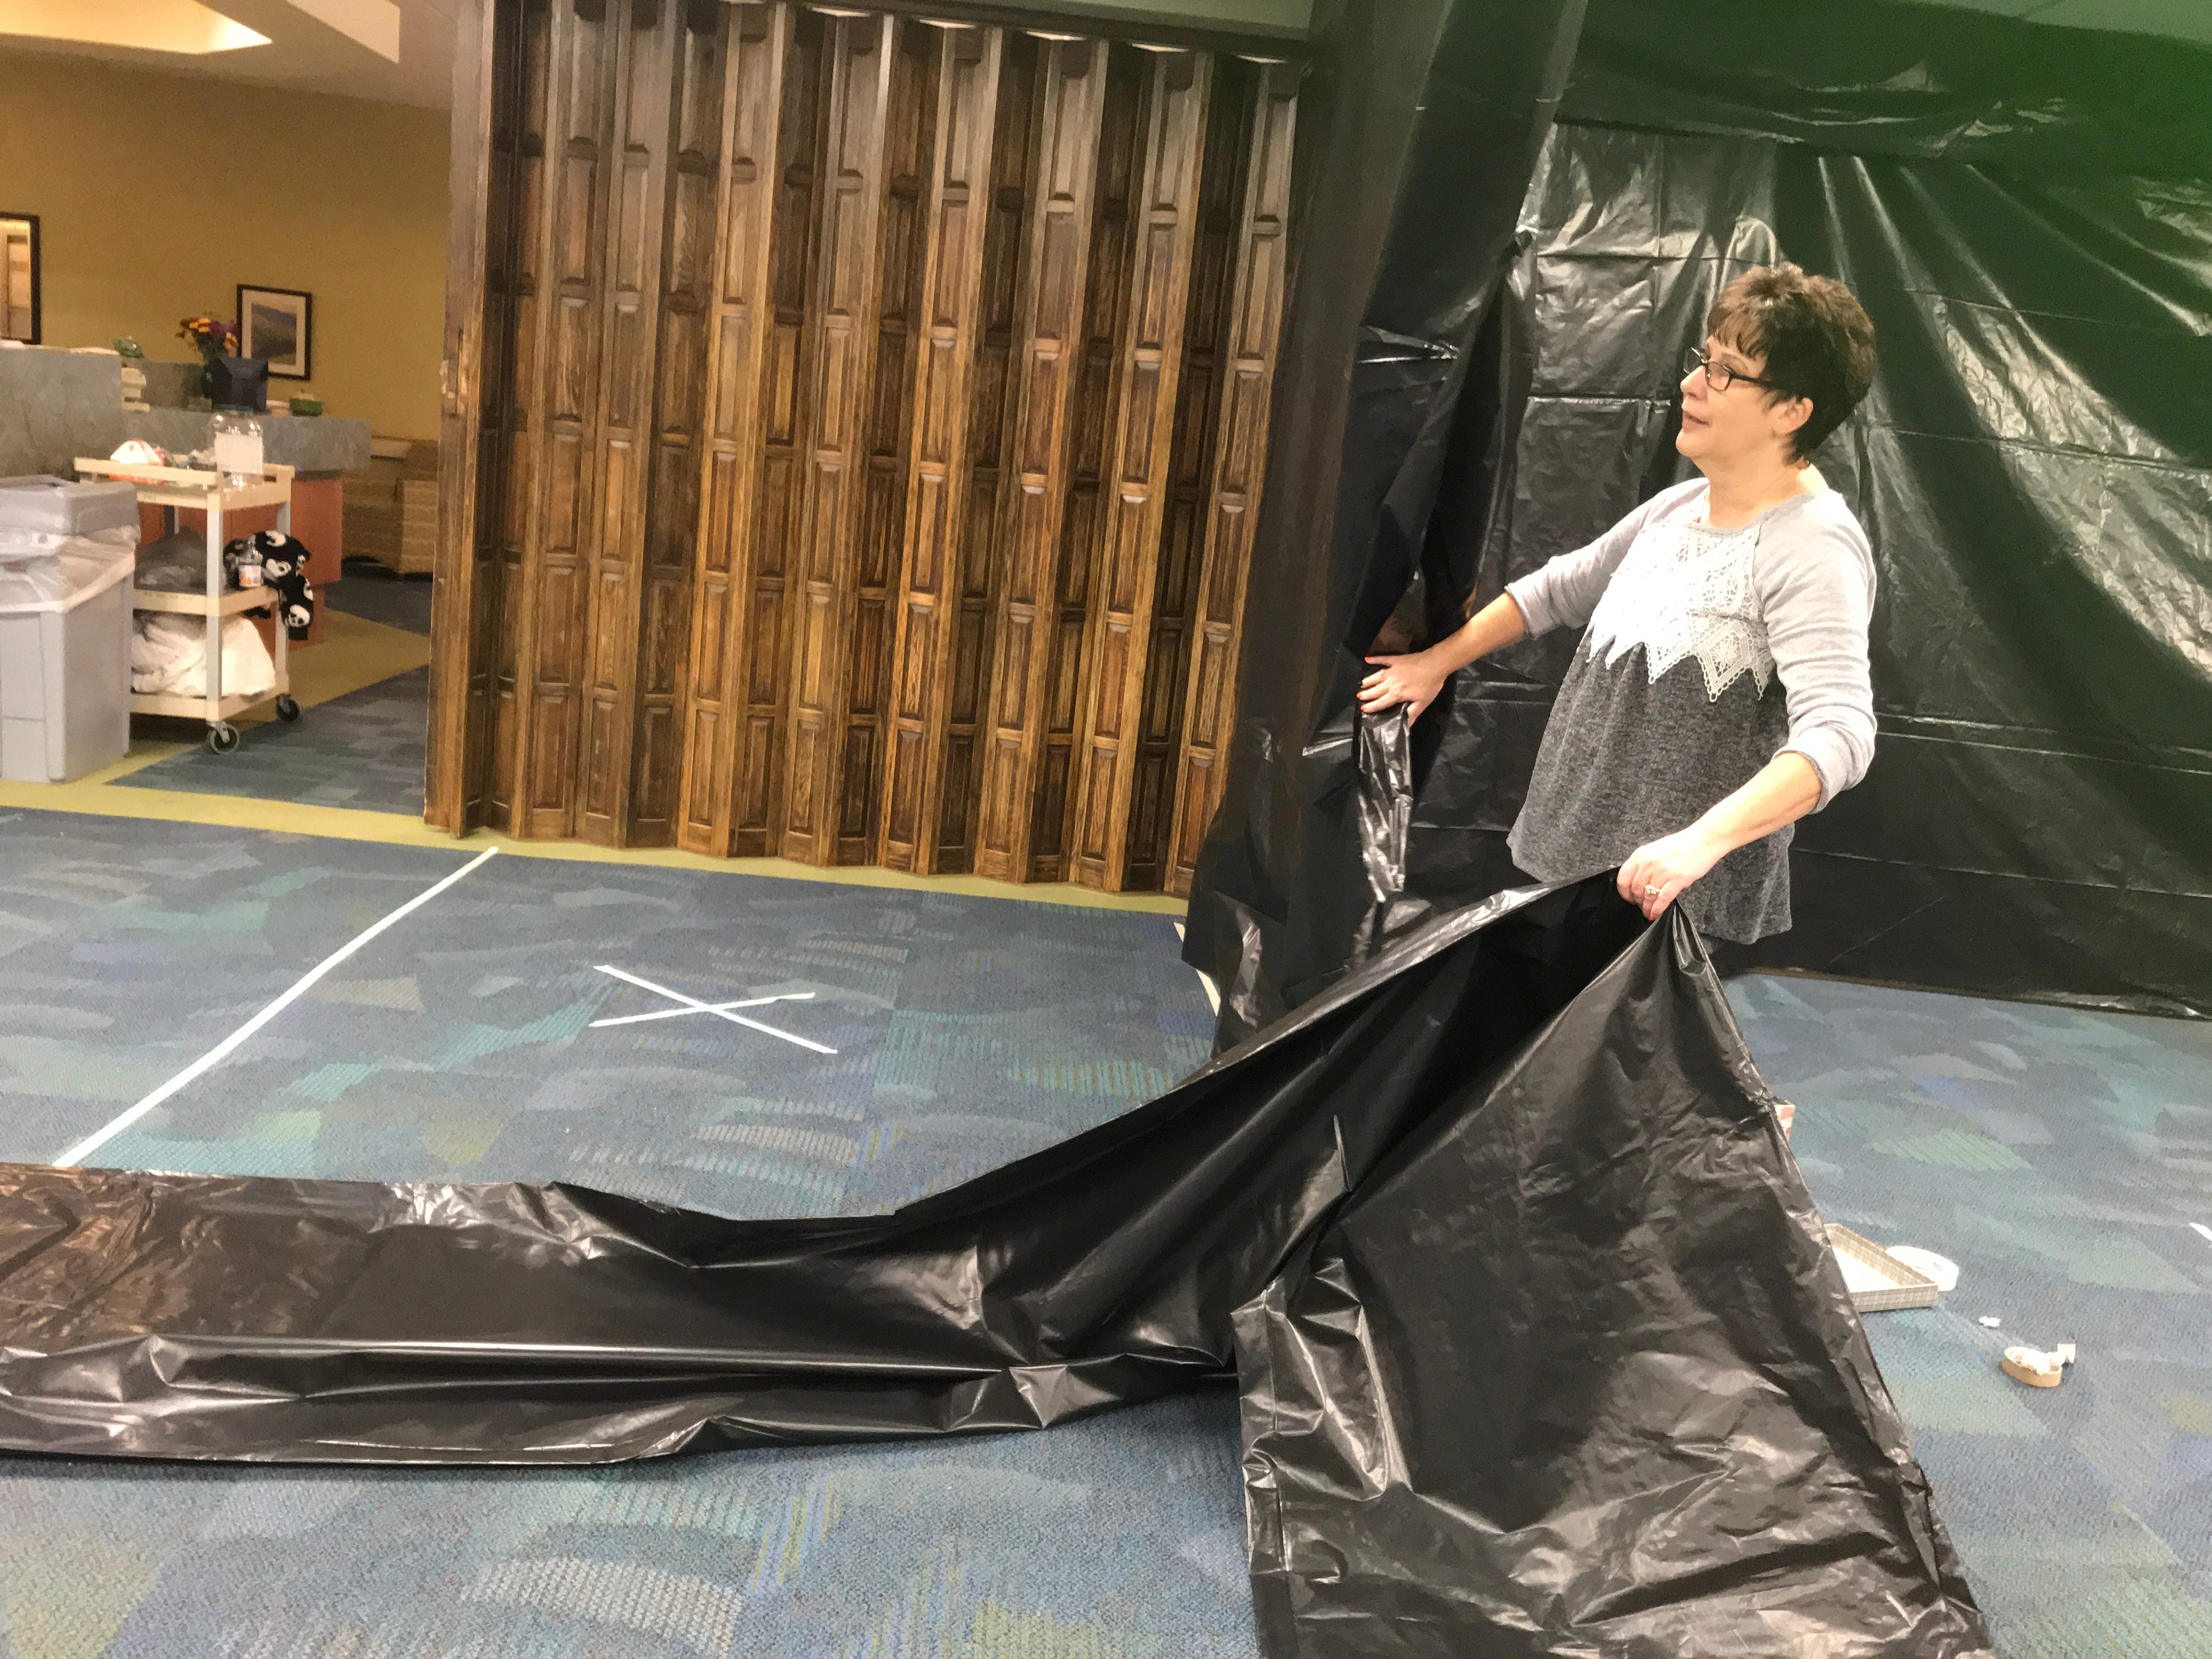 Faye Clark, activity director at Hilltop campus, helps hang black plastic Monday for the community haunted house.